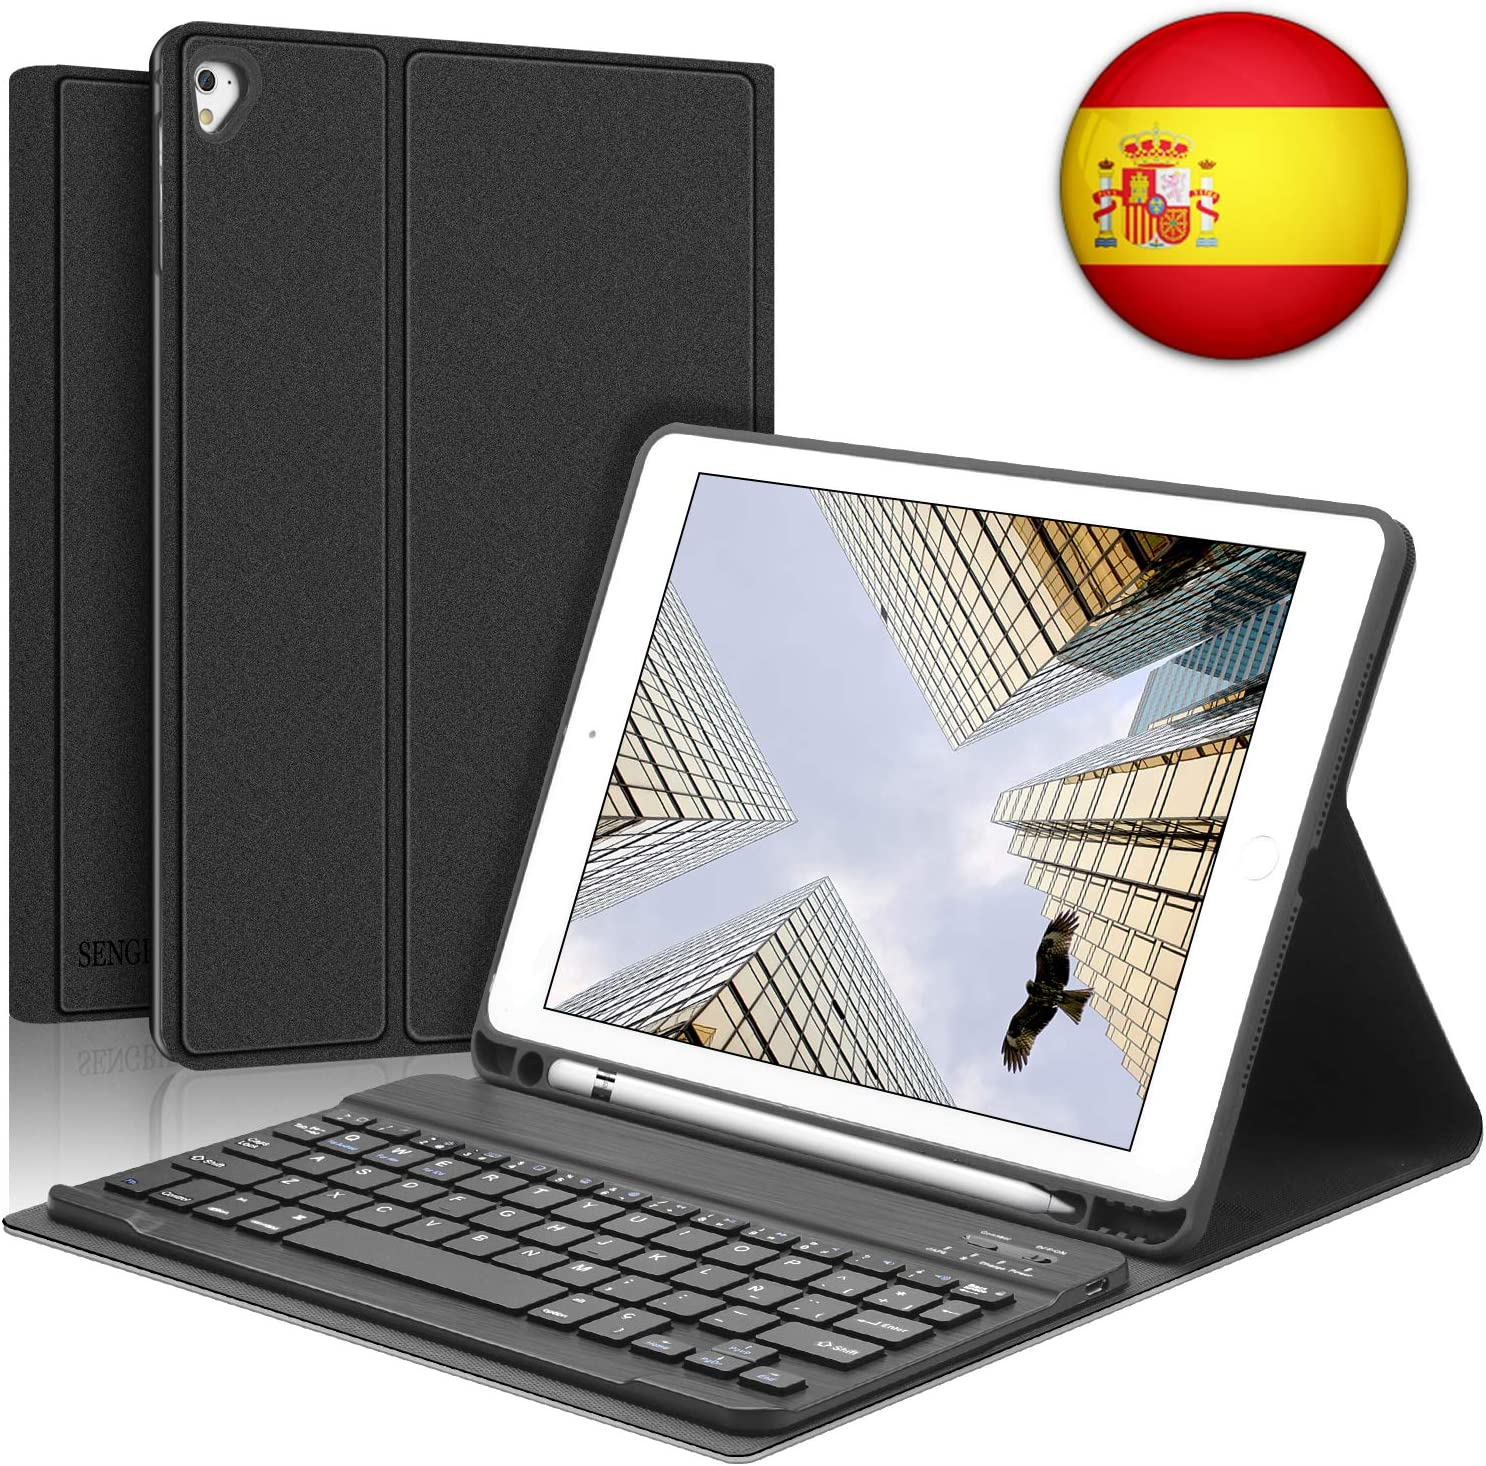 SENGBIRCH iPad Teclado Funda, Funda con Teclado Español para iPad 2018(6th Gen)/iPad 2017/iPad Air 2/iPad Air/iPad Pro 9.7,Teclado Bluetooth con Cover Smart Auto Sleep/Wake para iPad 9.7-Negro